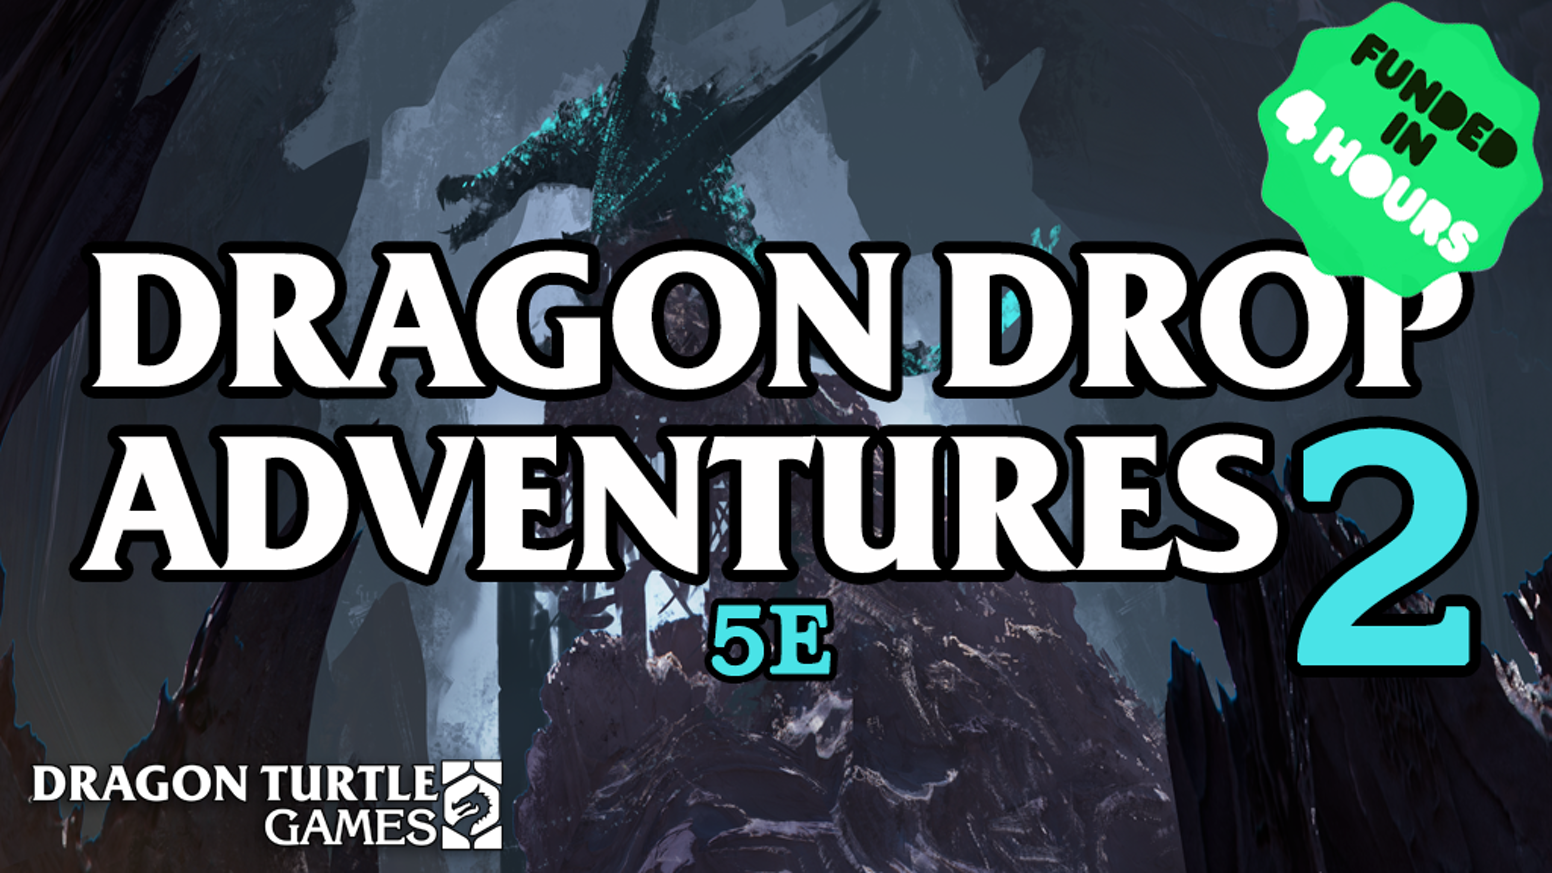 Dragon Drop Adventures 5e Vol. 2 contains easy to implement, high octane, and fun, single session adventures for Dungeons & Dragons 5e.